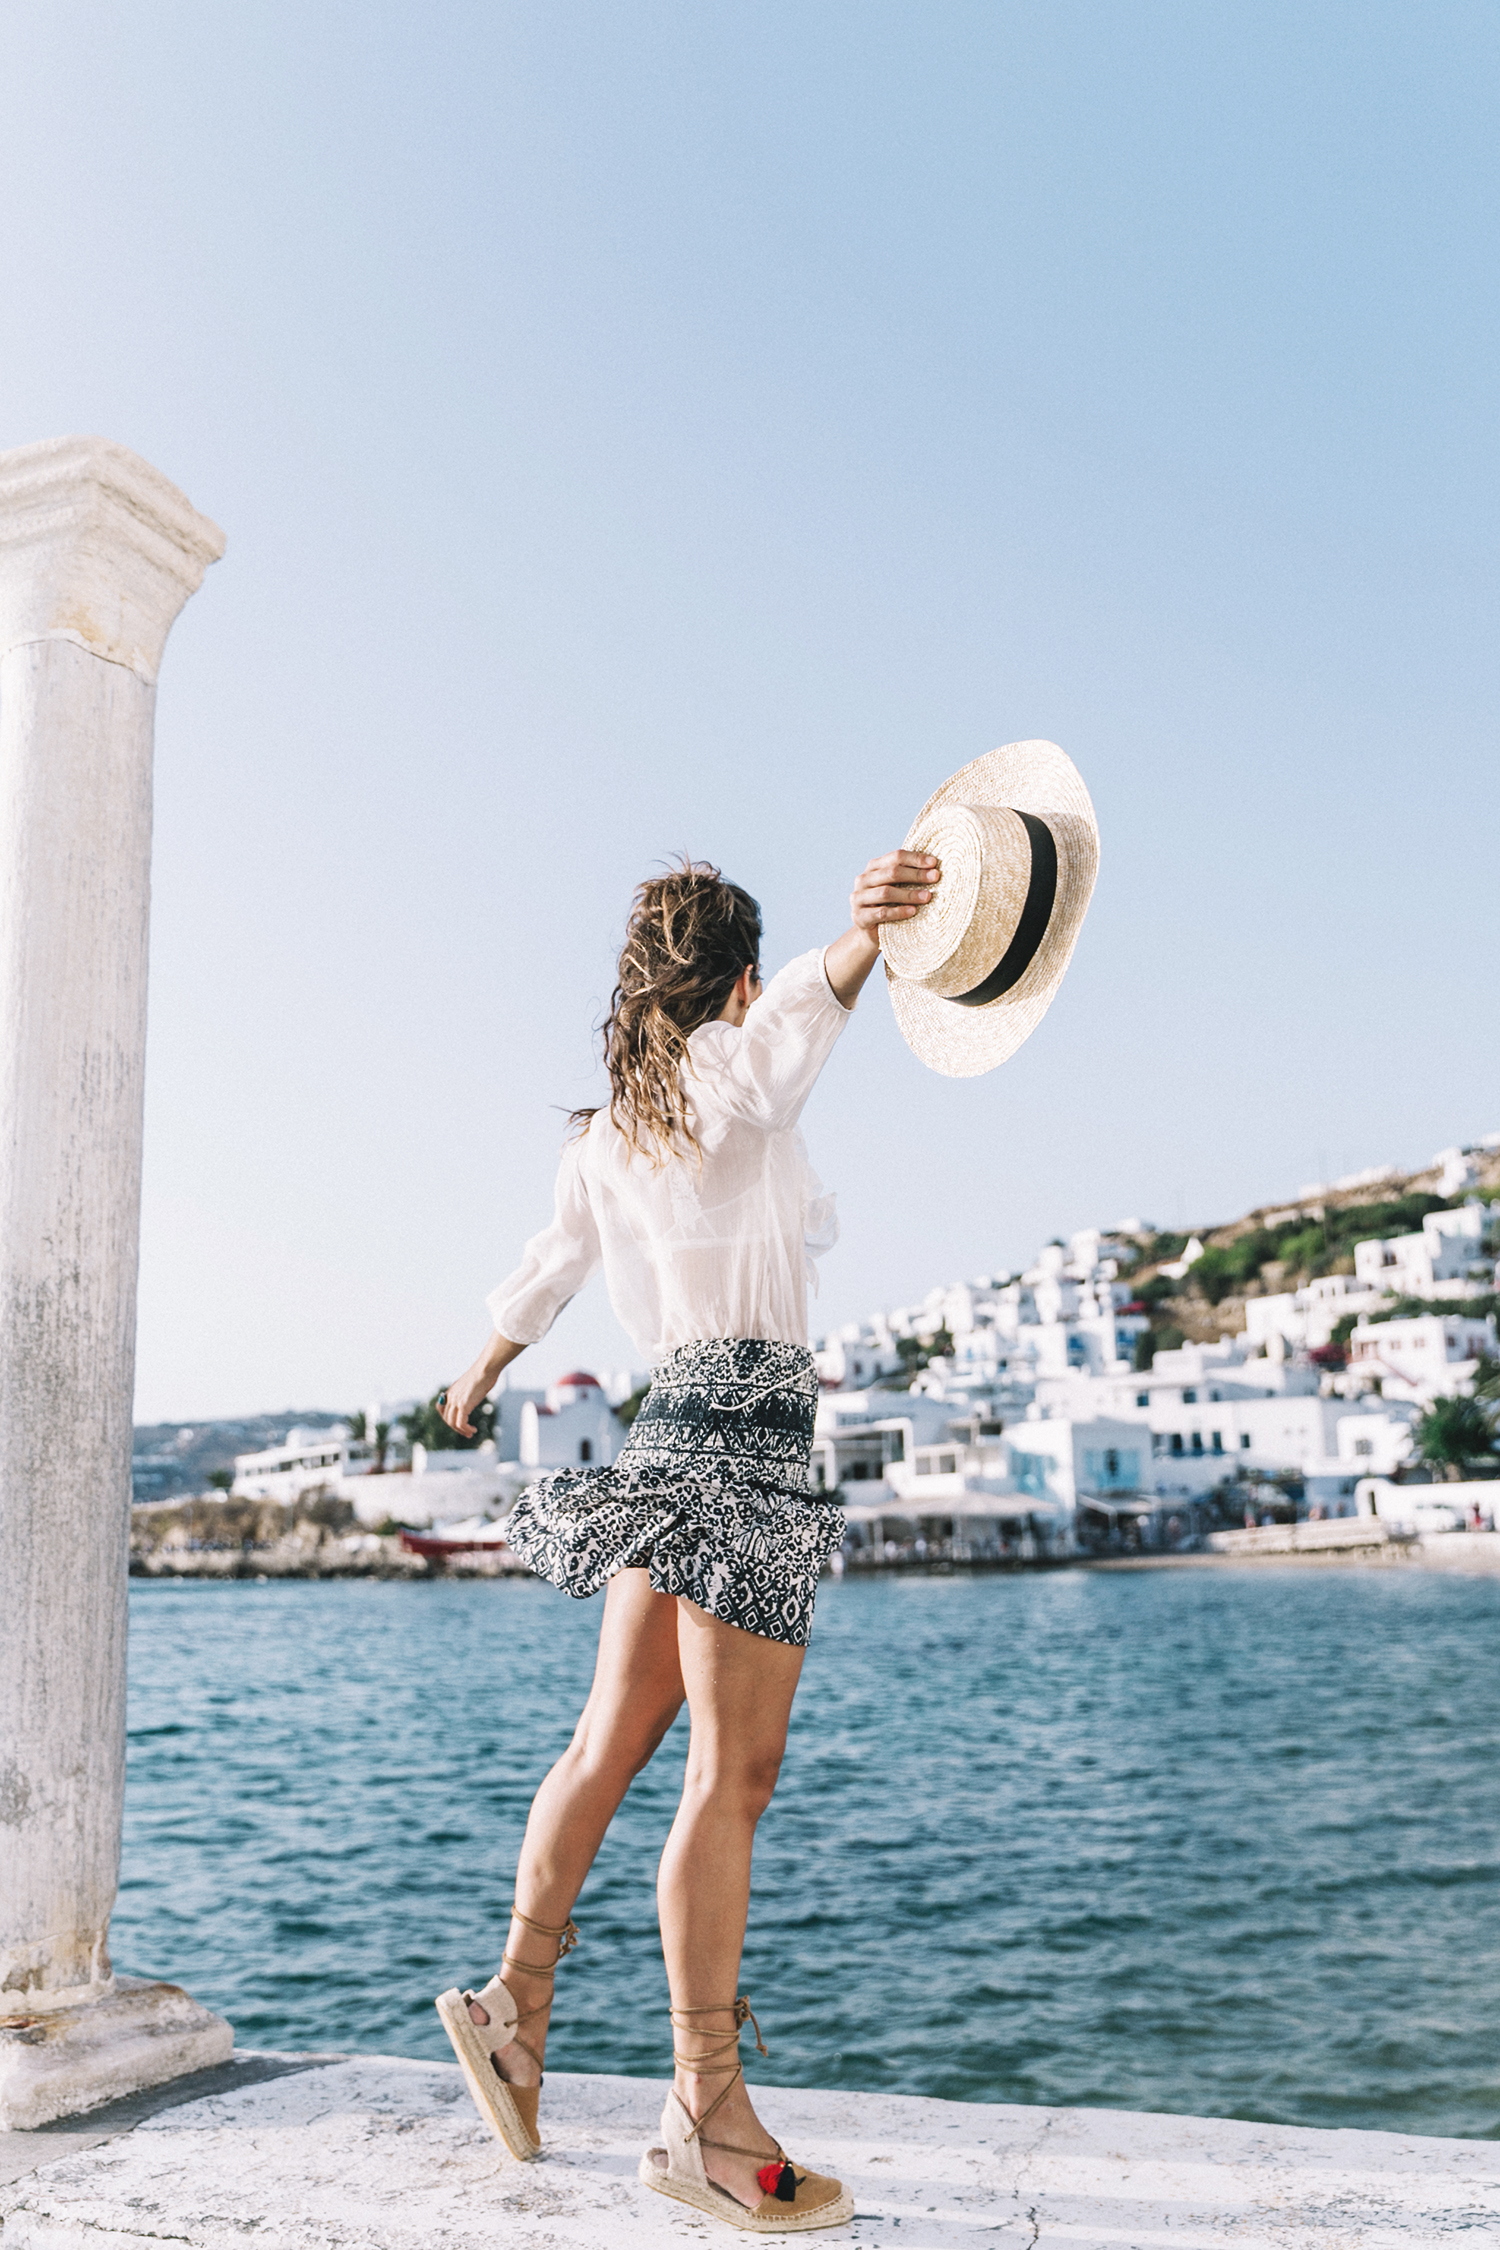 Lace_up_Blouse-Ralph_Lauren-Soludos_Espadrilles-Soludos_Escapes-Skirt-Straw_Hat-Canotier-Lack_Of_Color-Street_Style-Mykonos-Greece-Collage_Vintage-87